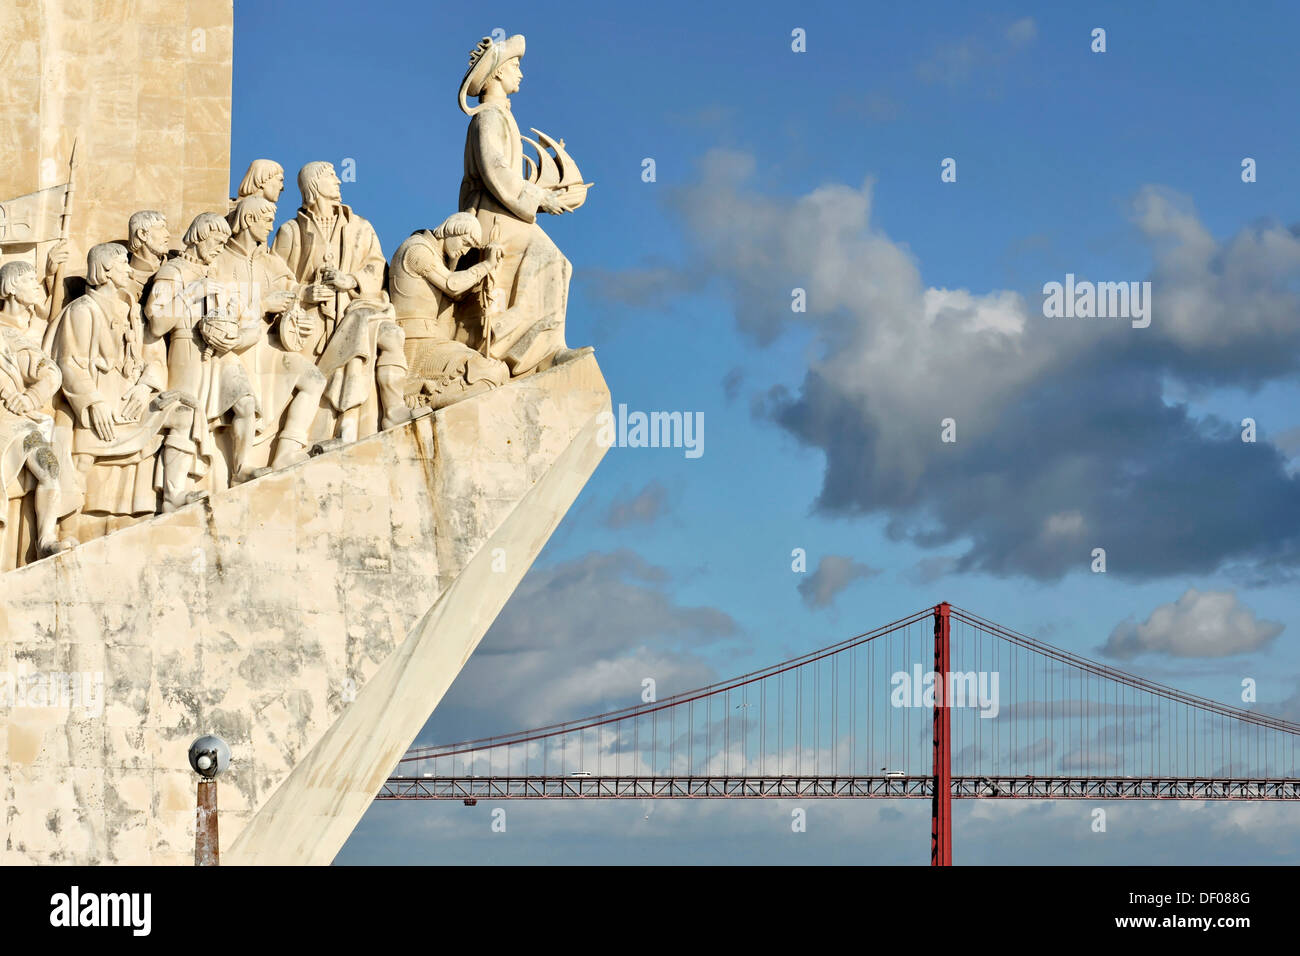 Padráo dos Descobrimentos, Monument to the Discoveries, monument with major Portuguese seafaring figures on the banks of the - Stock Image